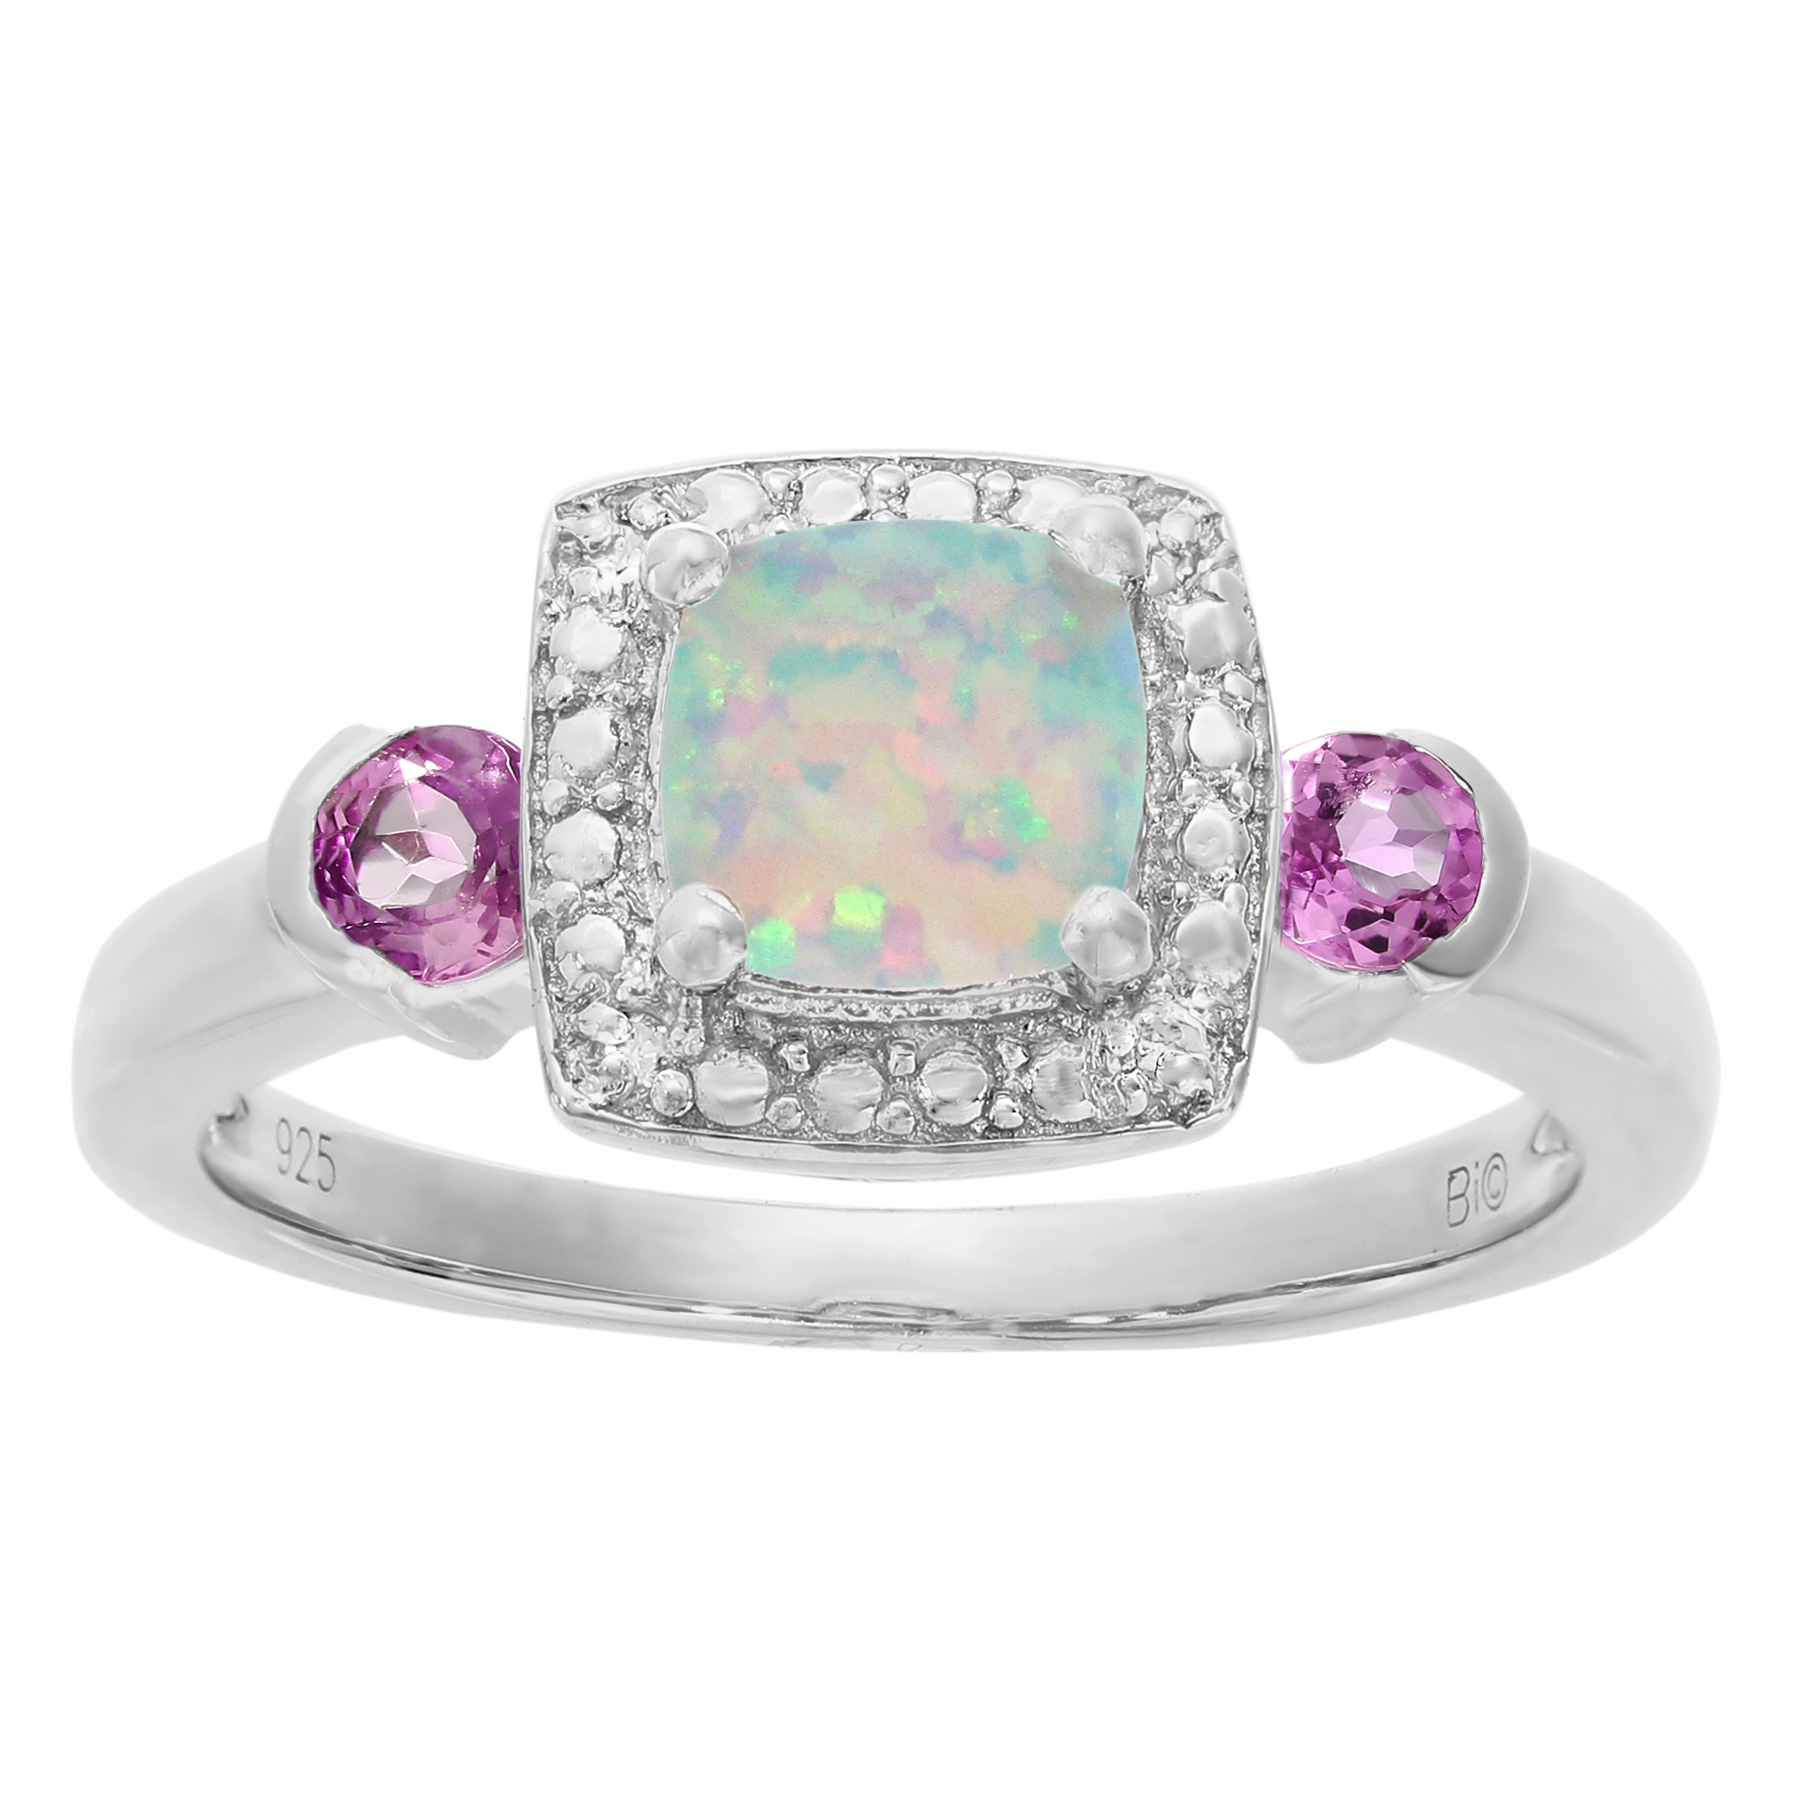 6 MM White Opal Pink Sapphire .02 cttw Diamond Silver Ring Size 7 by Metro Jewelry